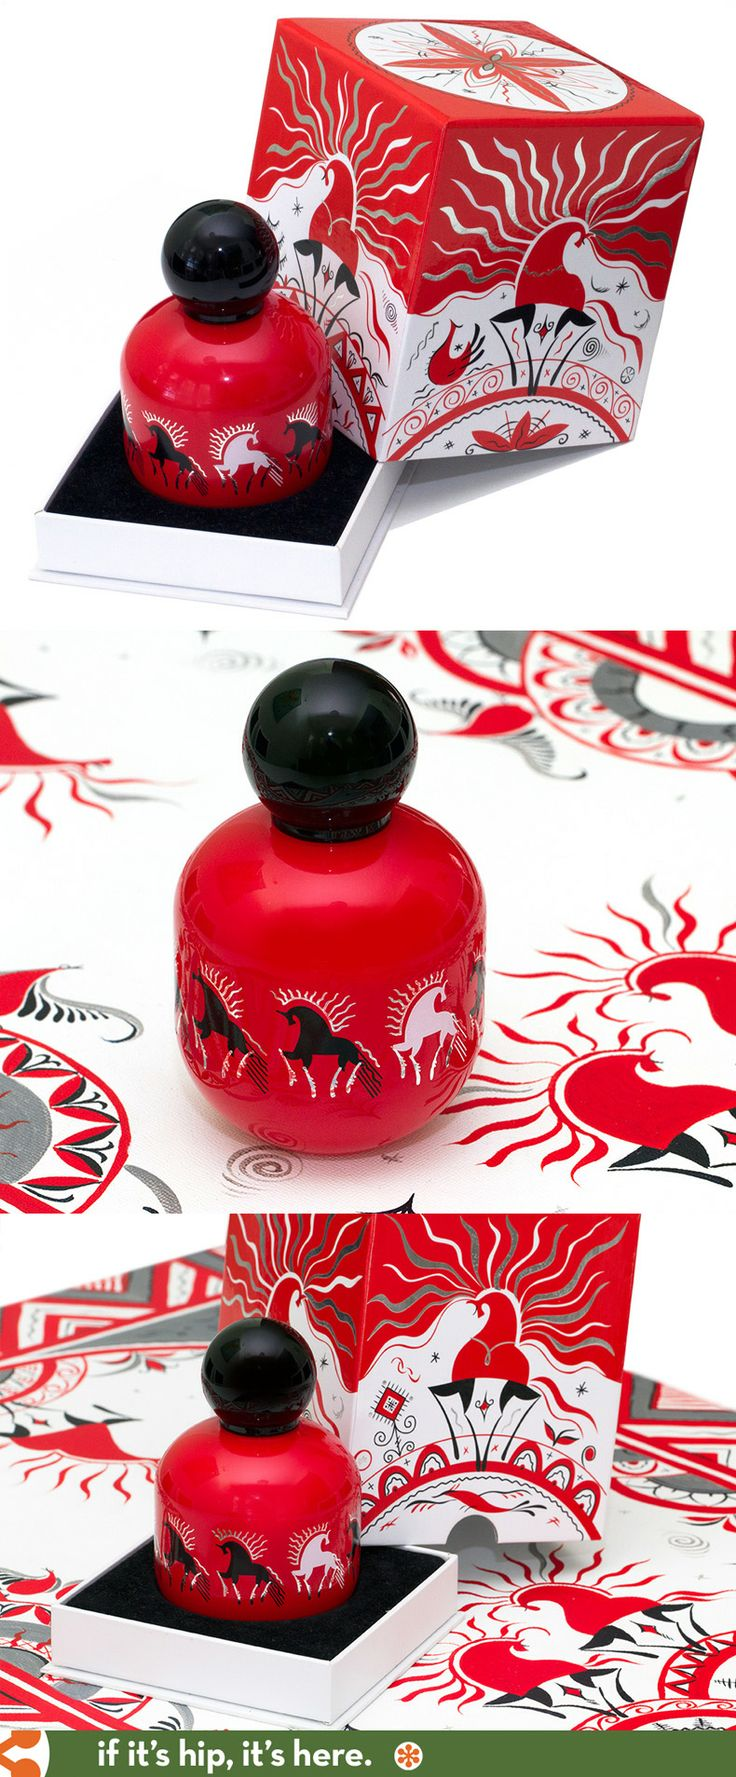 The Vagabond Prince's Land of Warriors perfume and packaging.